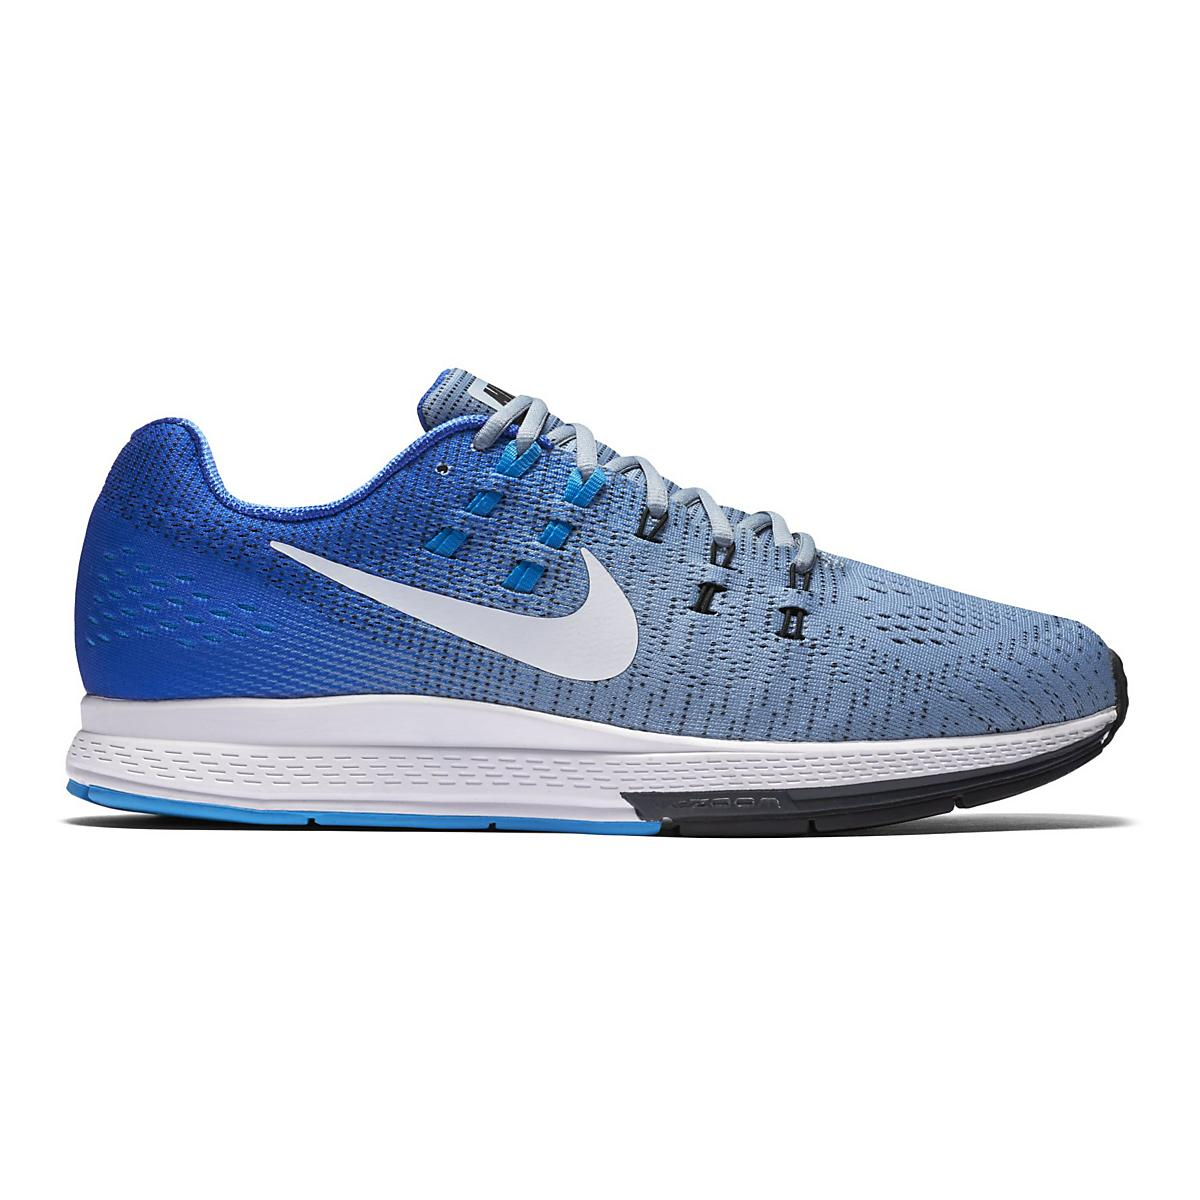 d87d68f9db1 Mens Nike Air Zoom Structure 19 Running Shoe at Road Runner Sports